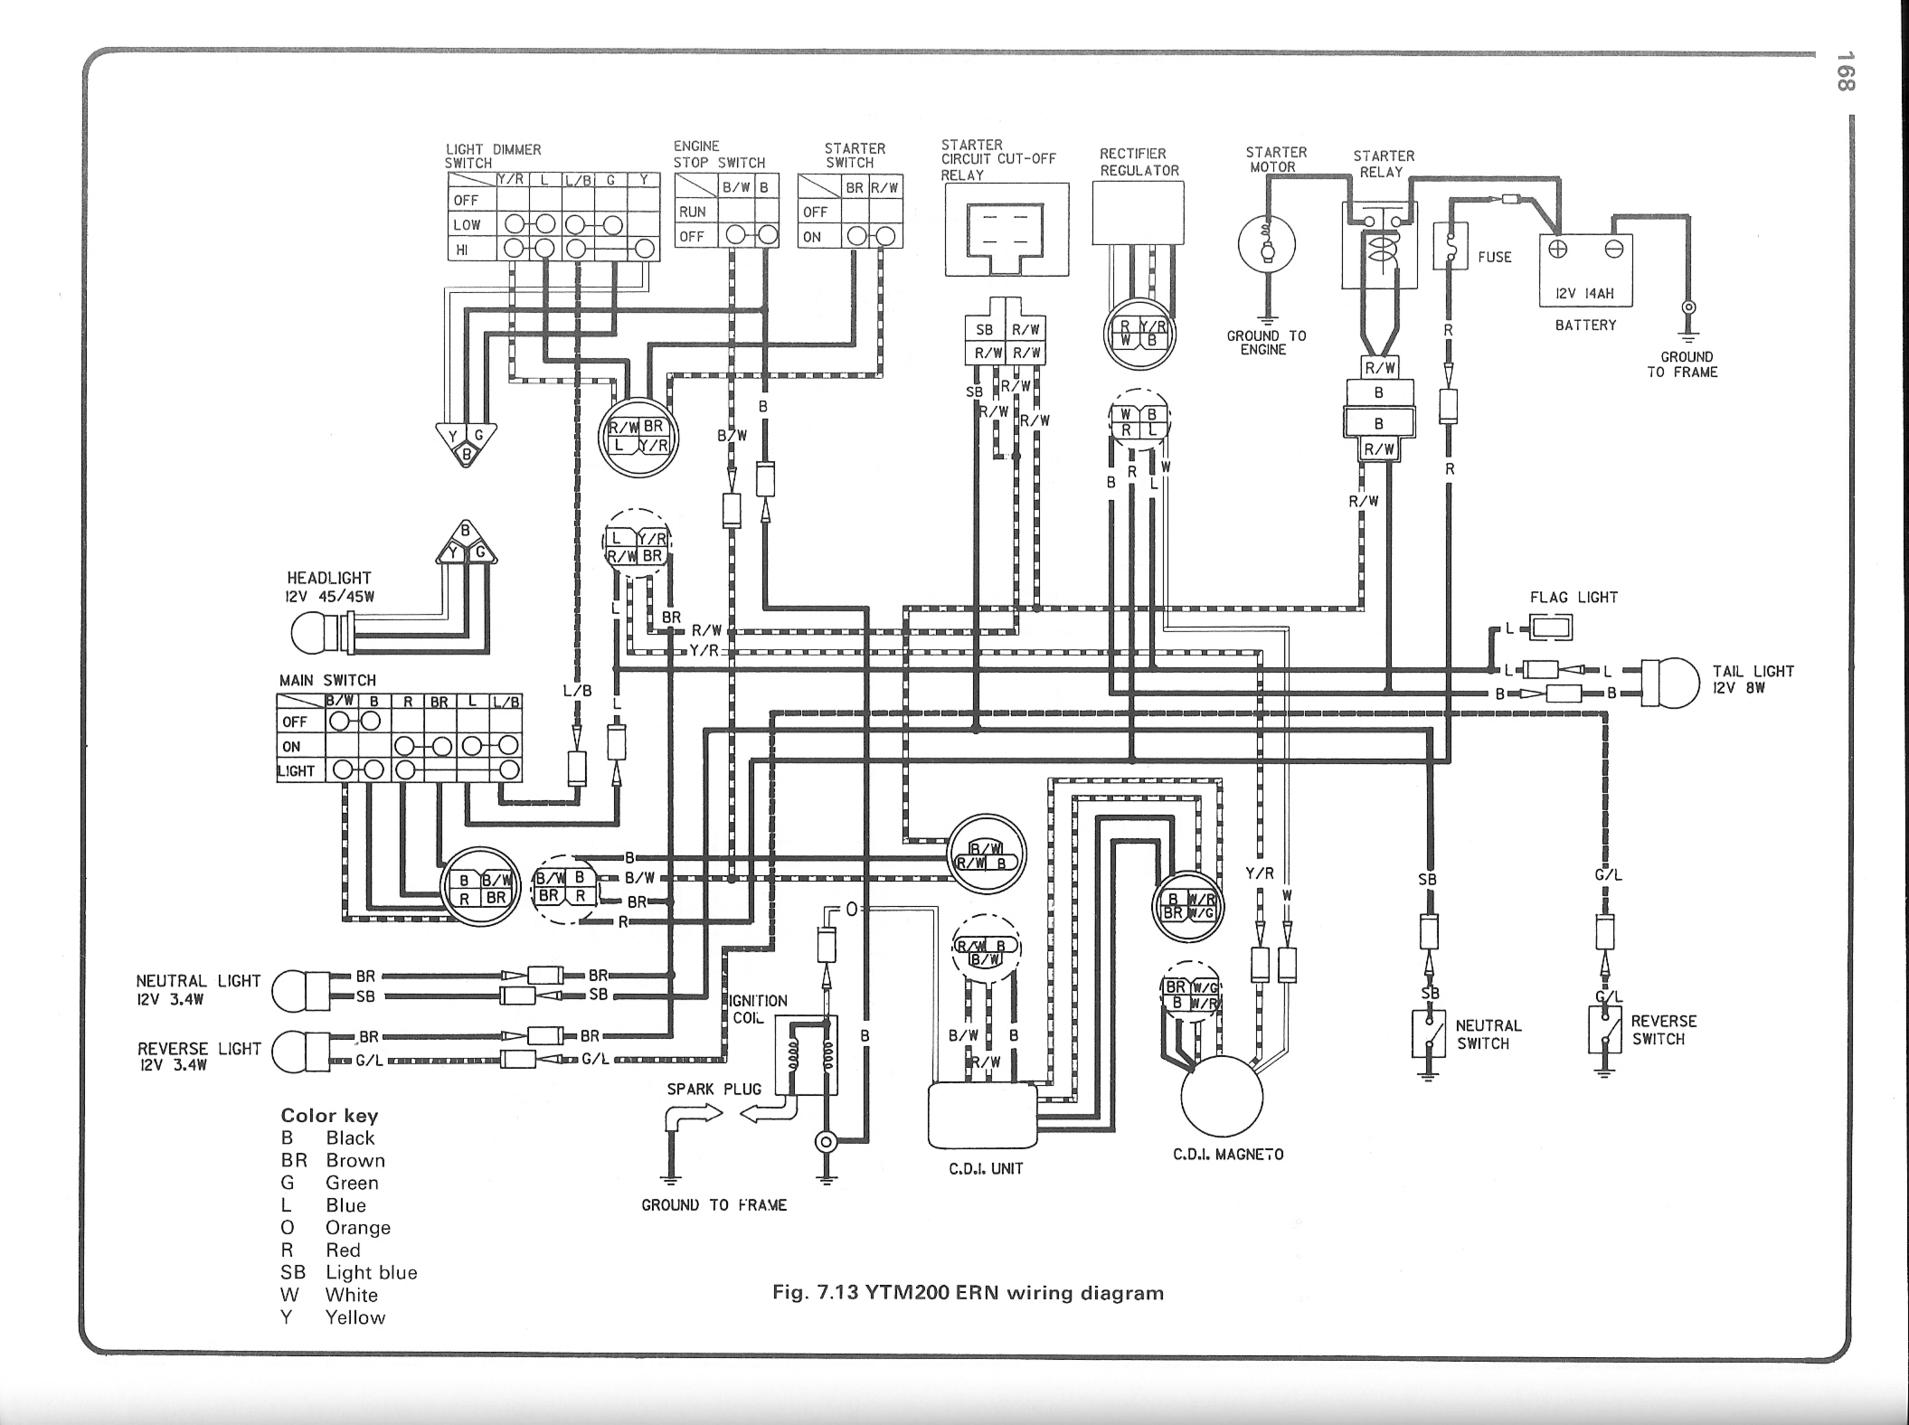 kawasaki 4 wheeler wiring diagram kawasaki free engine